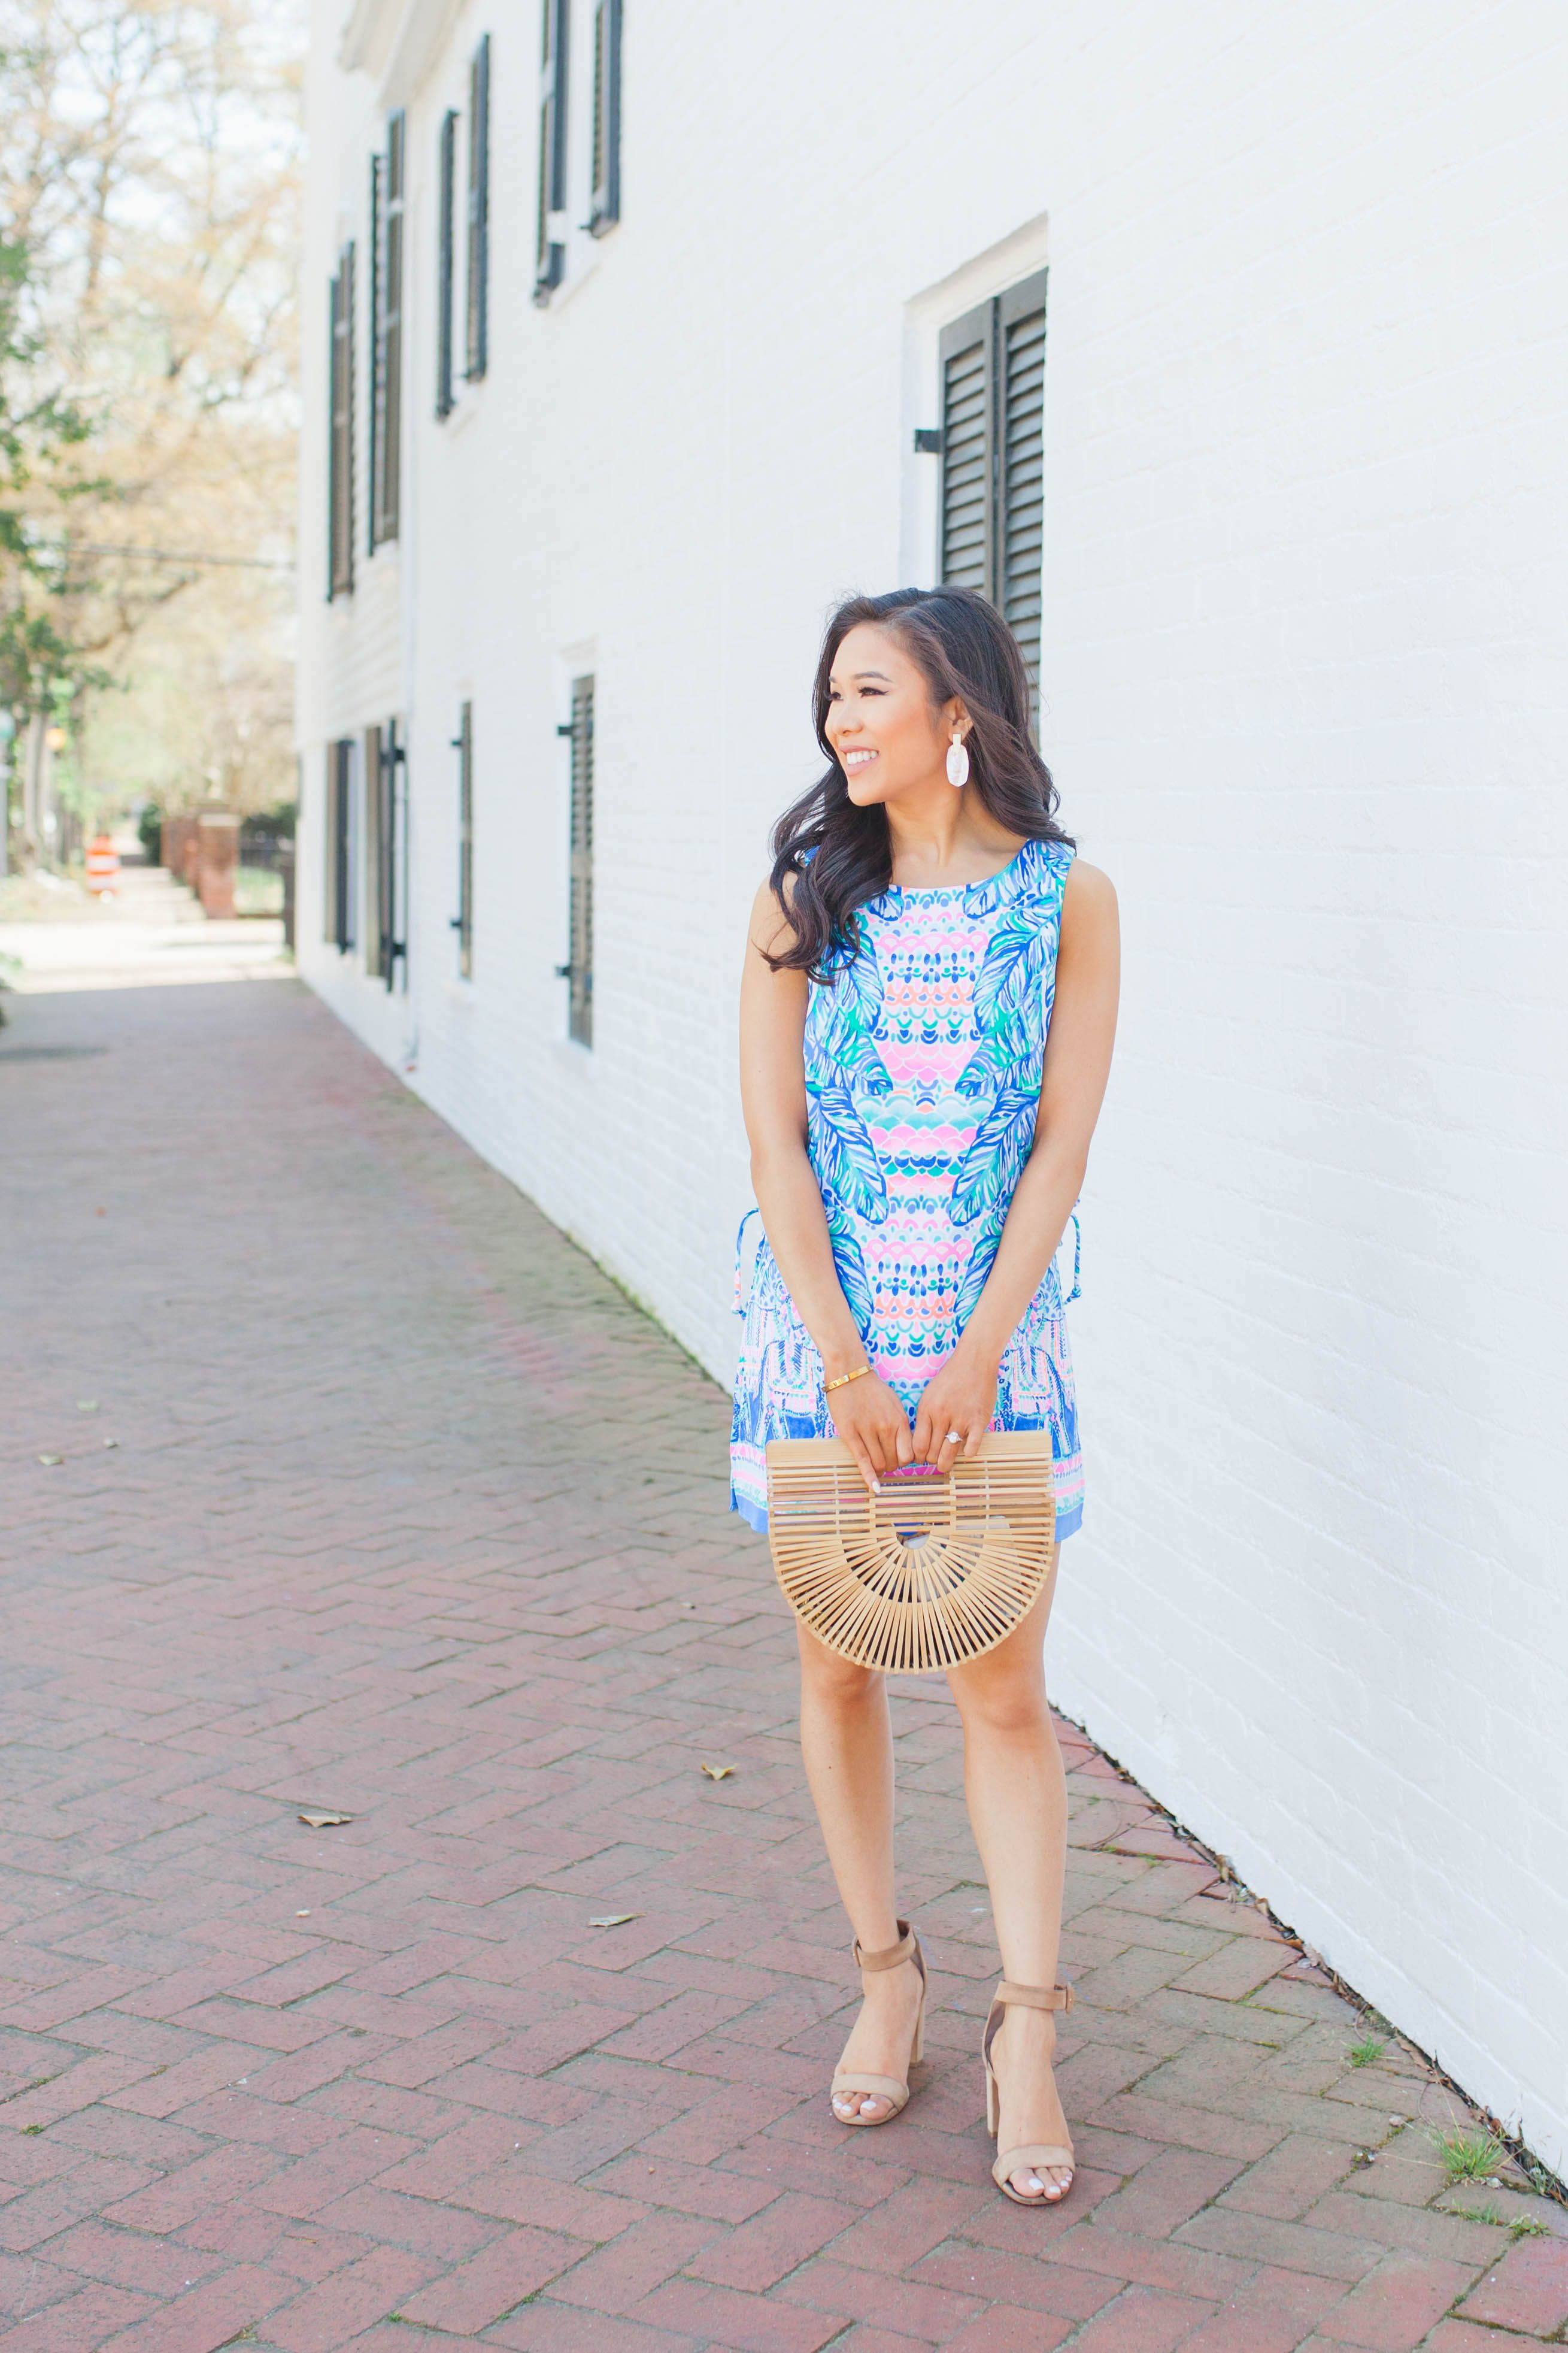 c7d6e1ca0f19 Lilly Pulitzer Donna Romper with Cult Gaia bamboo bag and Kendra Scott  earrings on blogger Hoang-Kim